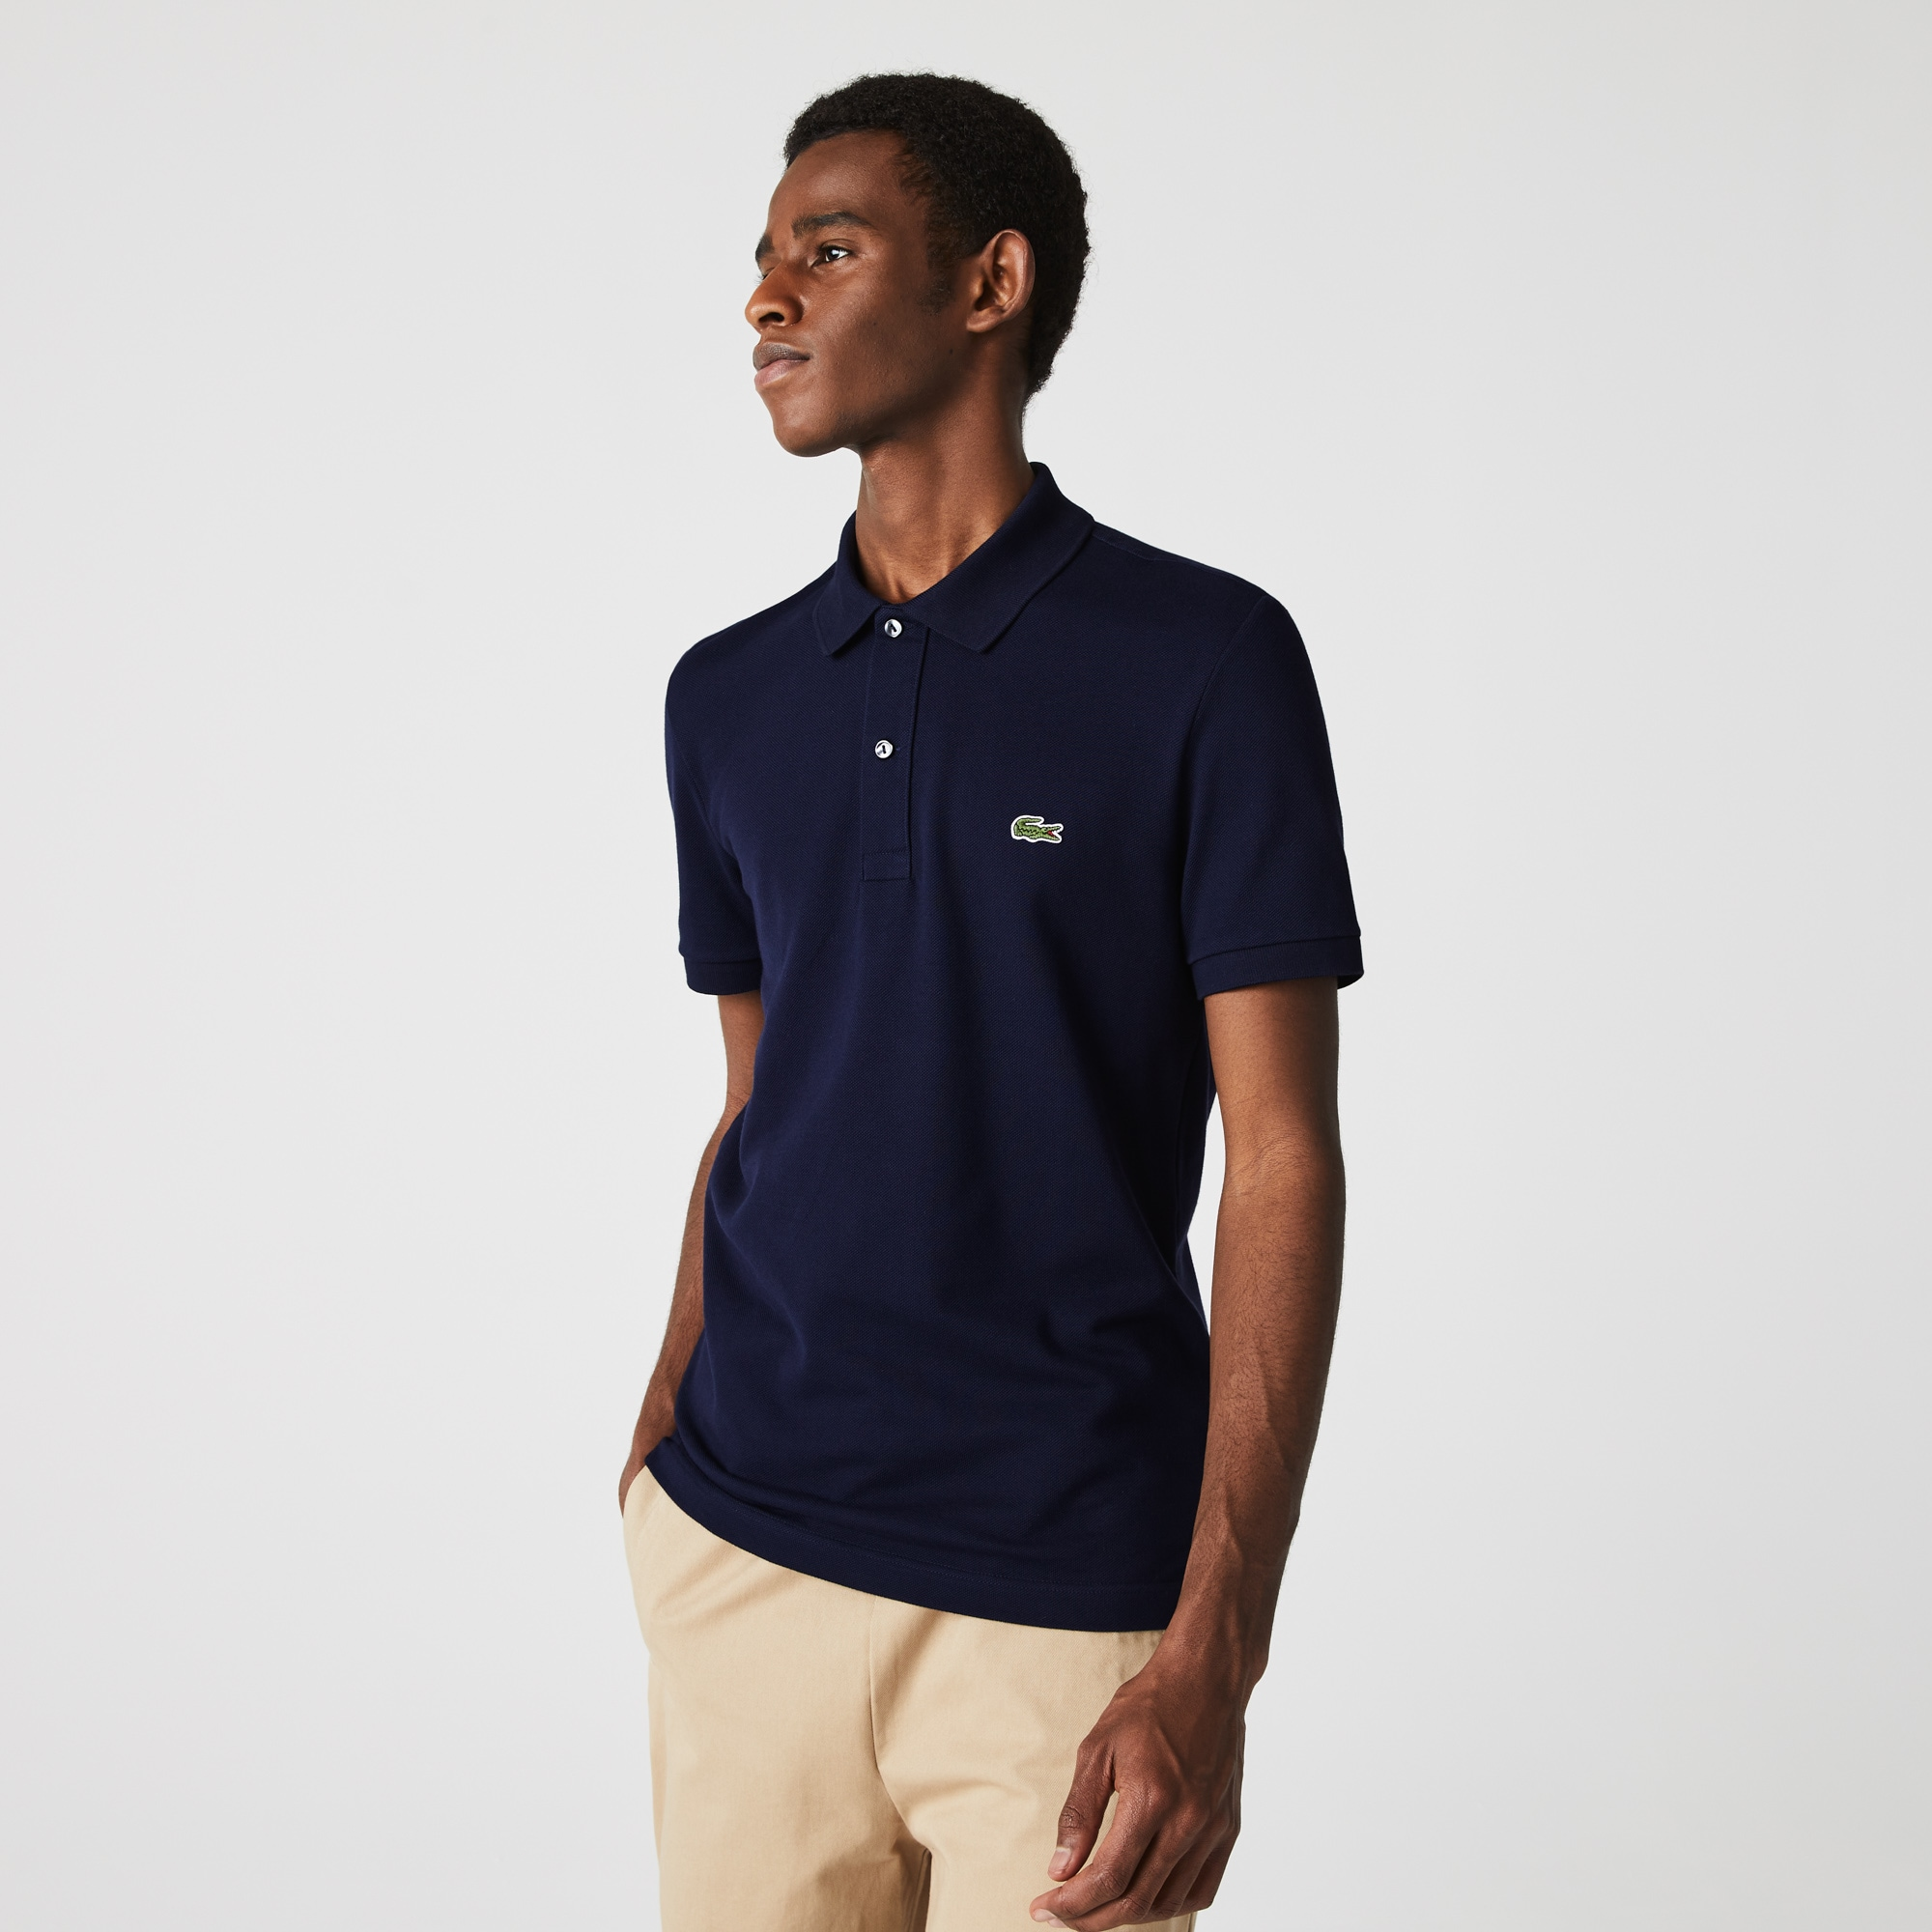 5ce66be4a6 Men's Slim fit Lacoste Polo Shirt in petit piqué | LACOSTE